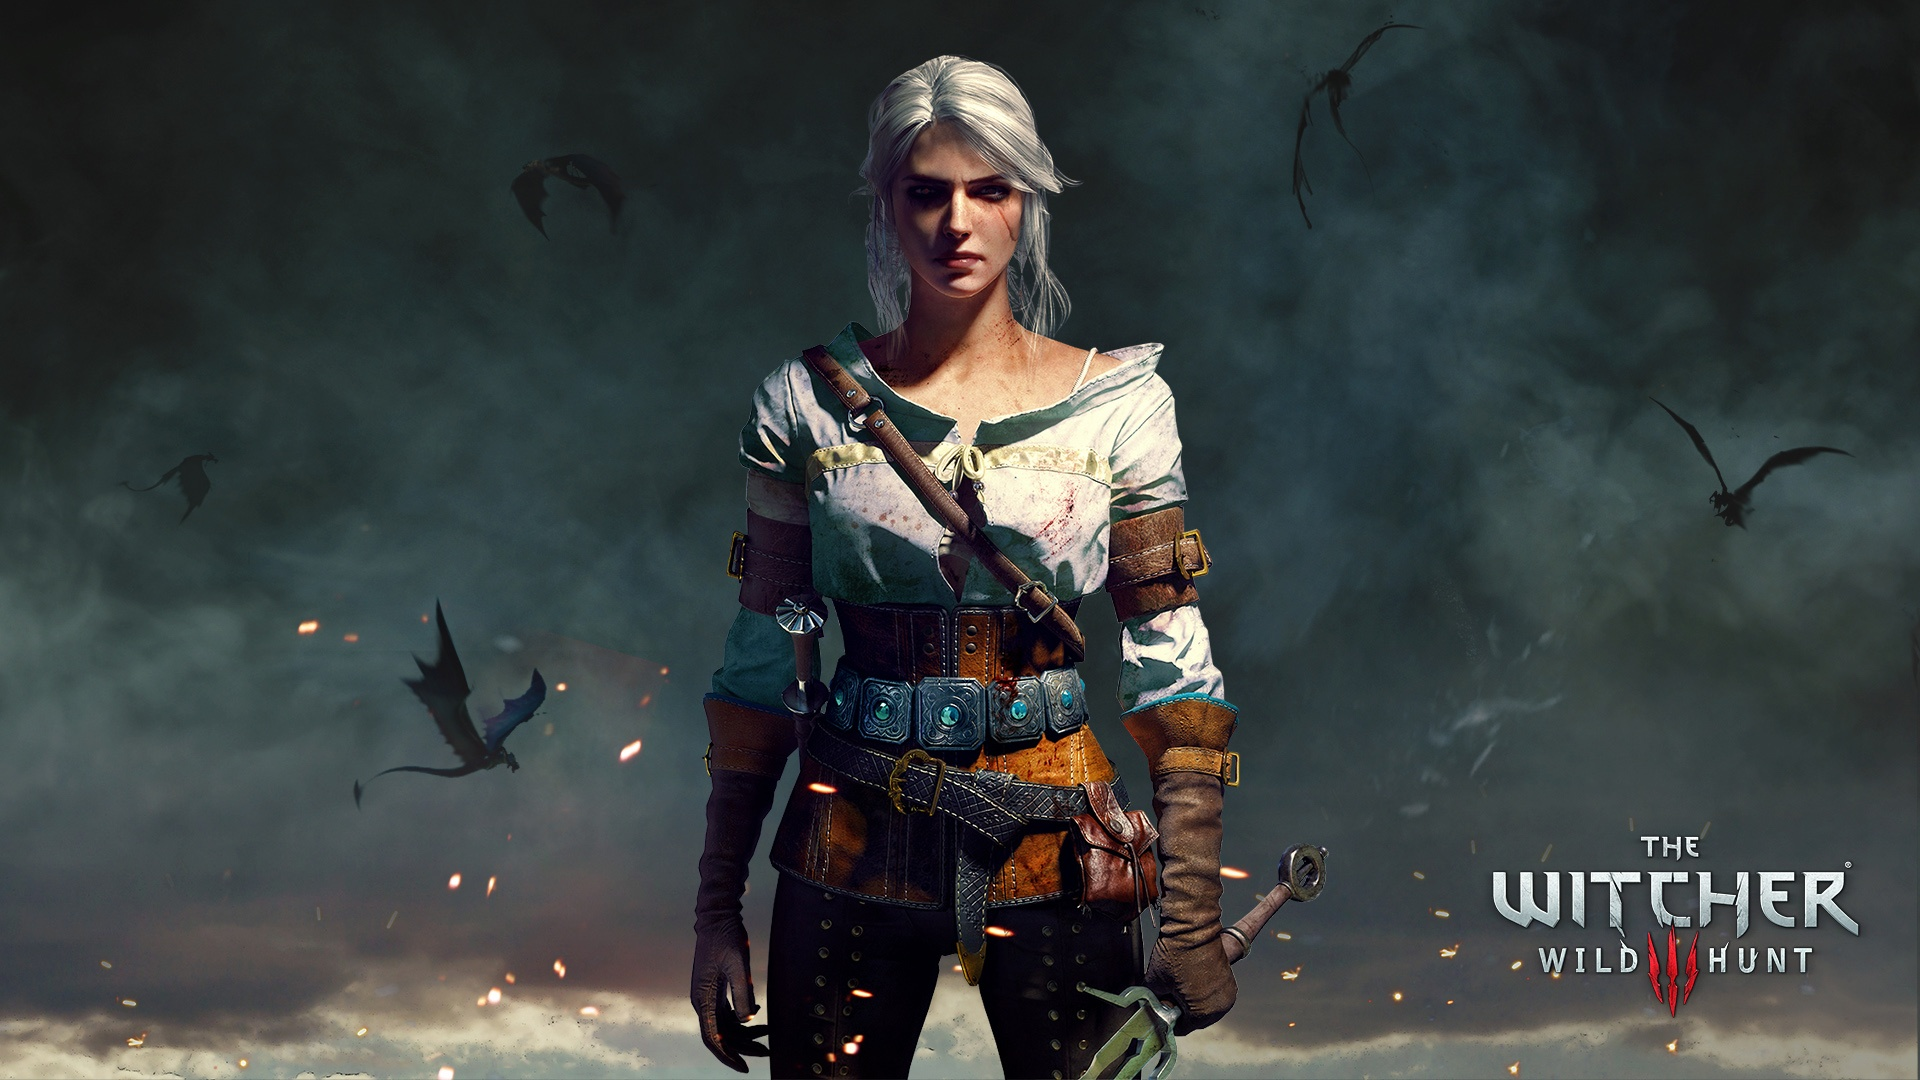 Ciri The Witcher 3 Wild Hunt Wallpapers in jpg format for